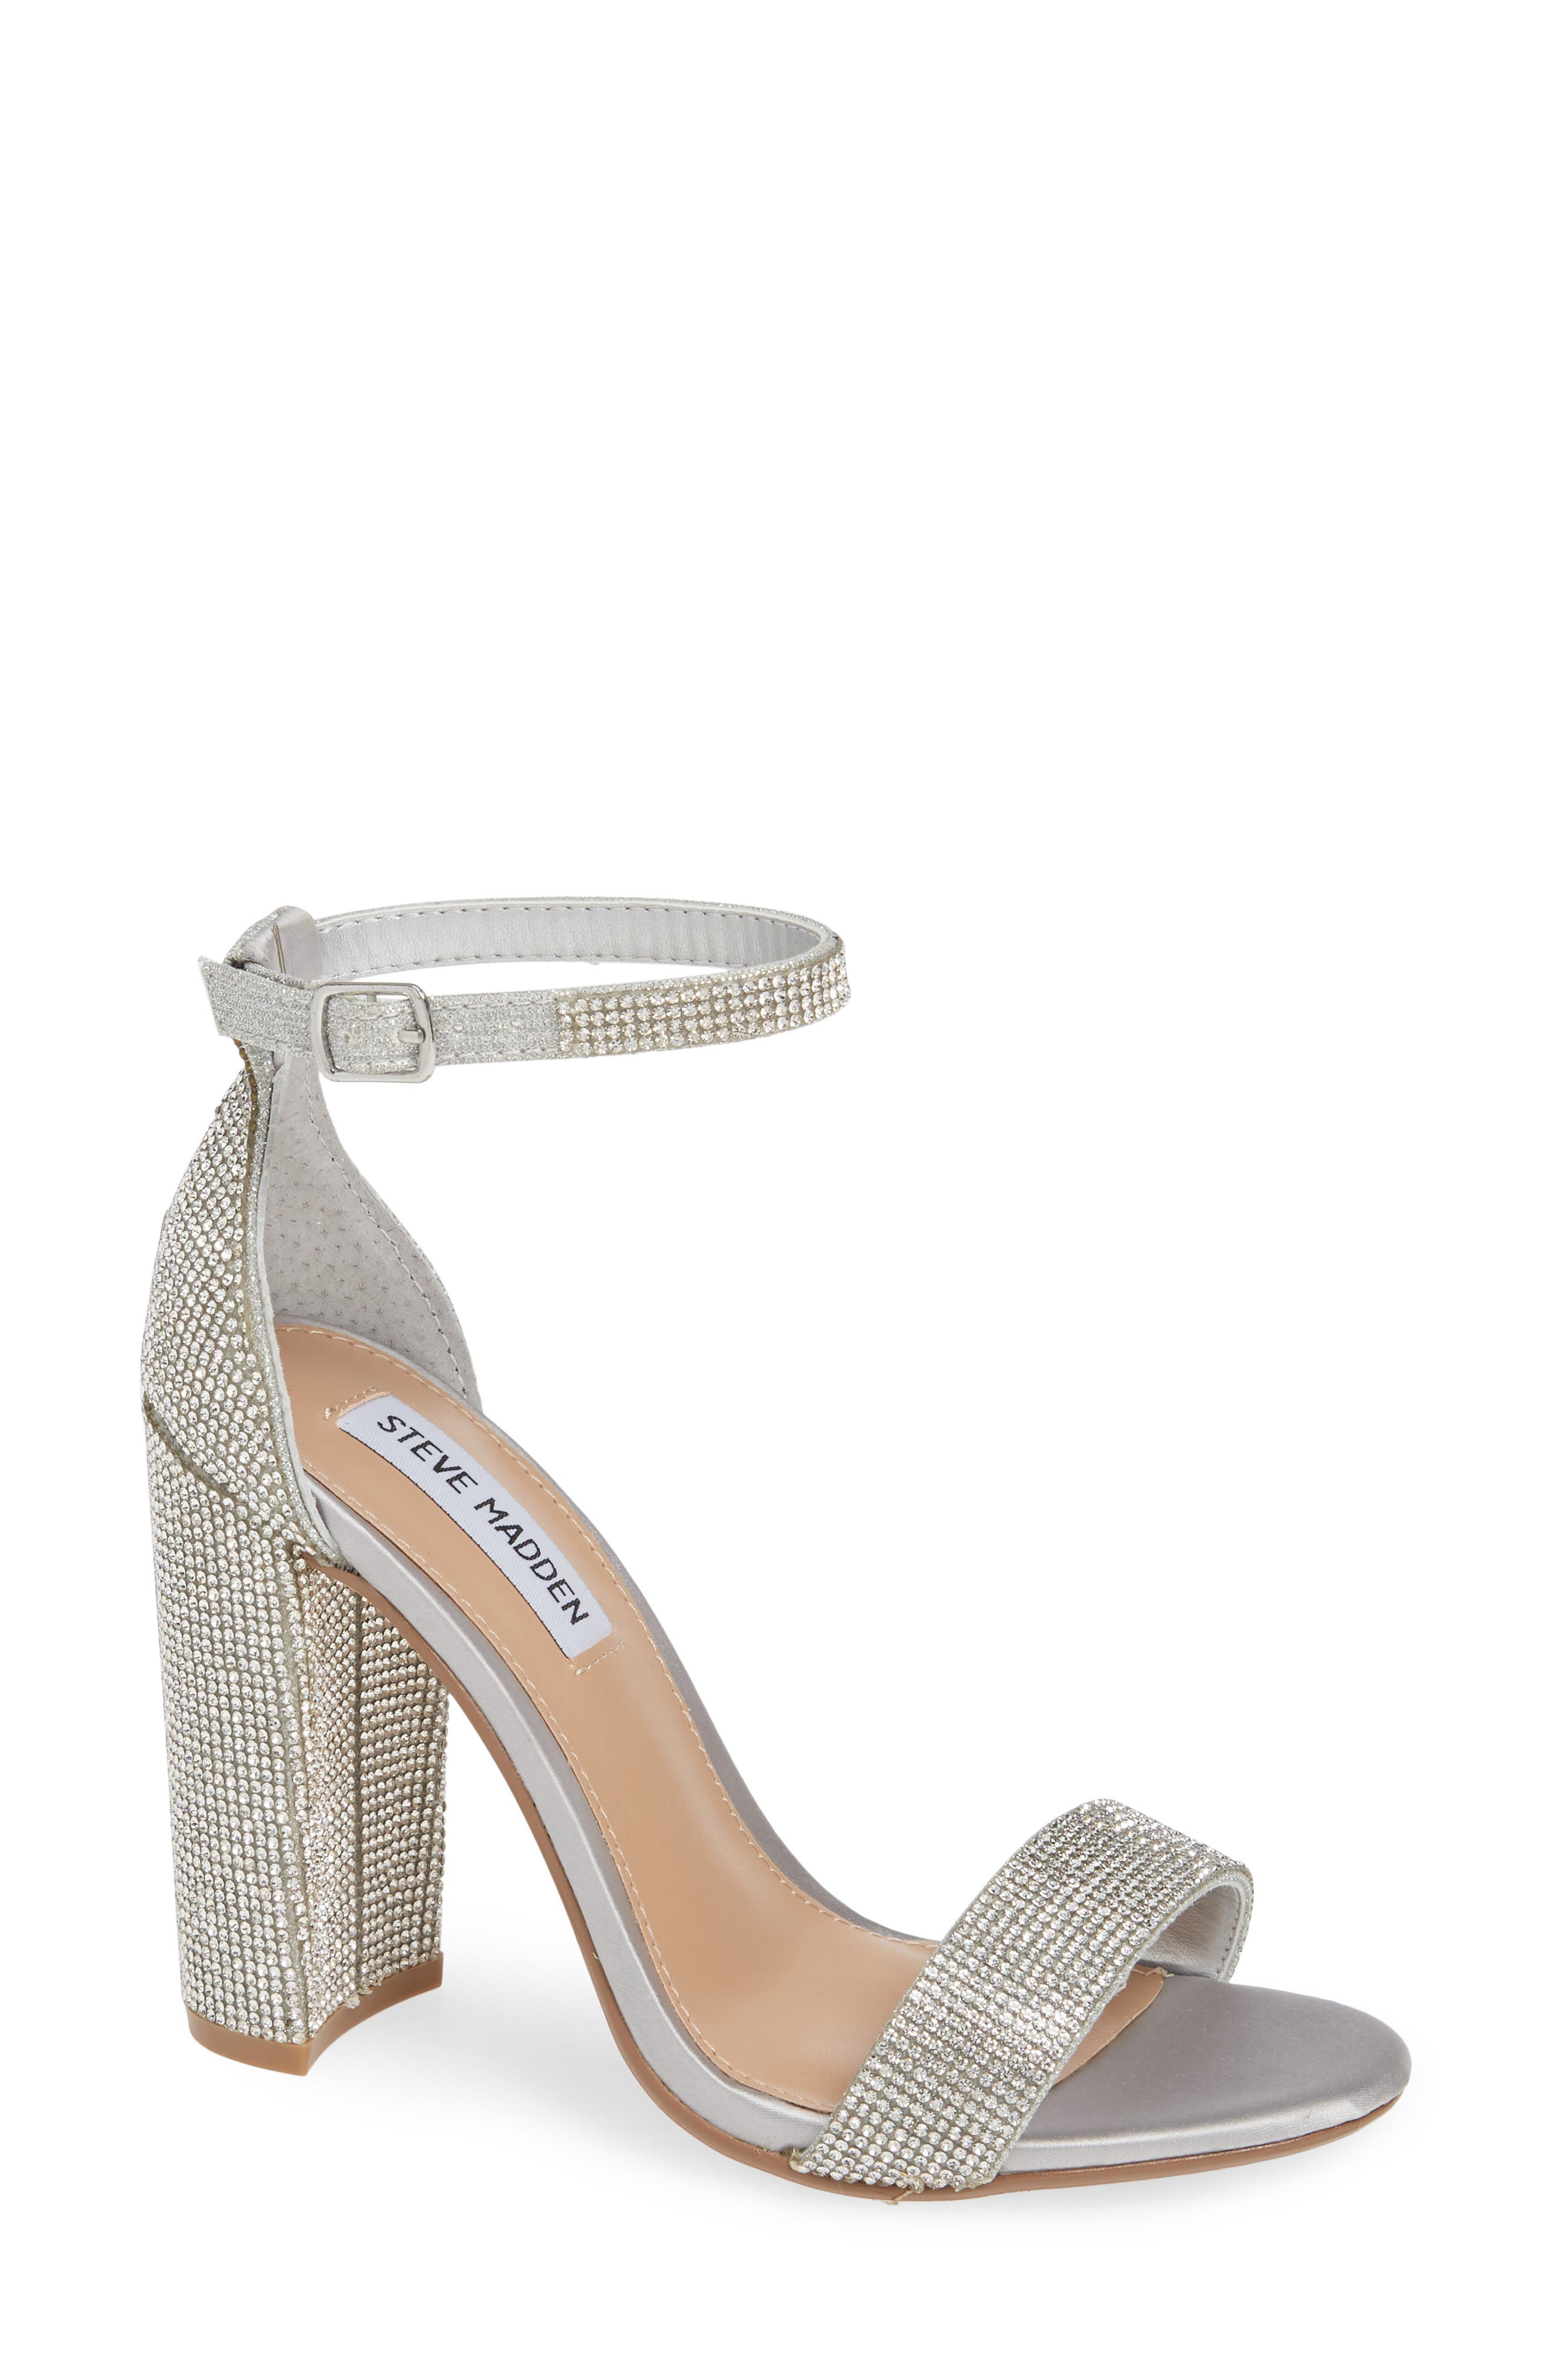 efaffd663b Women's Wedding Shoes | Nordstrom